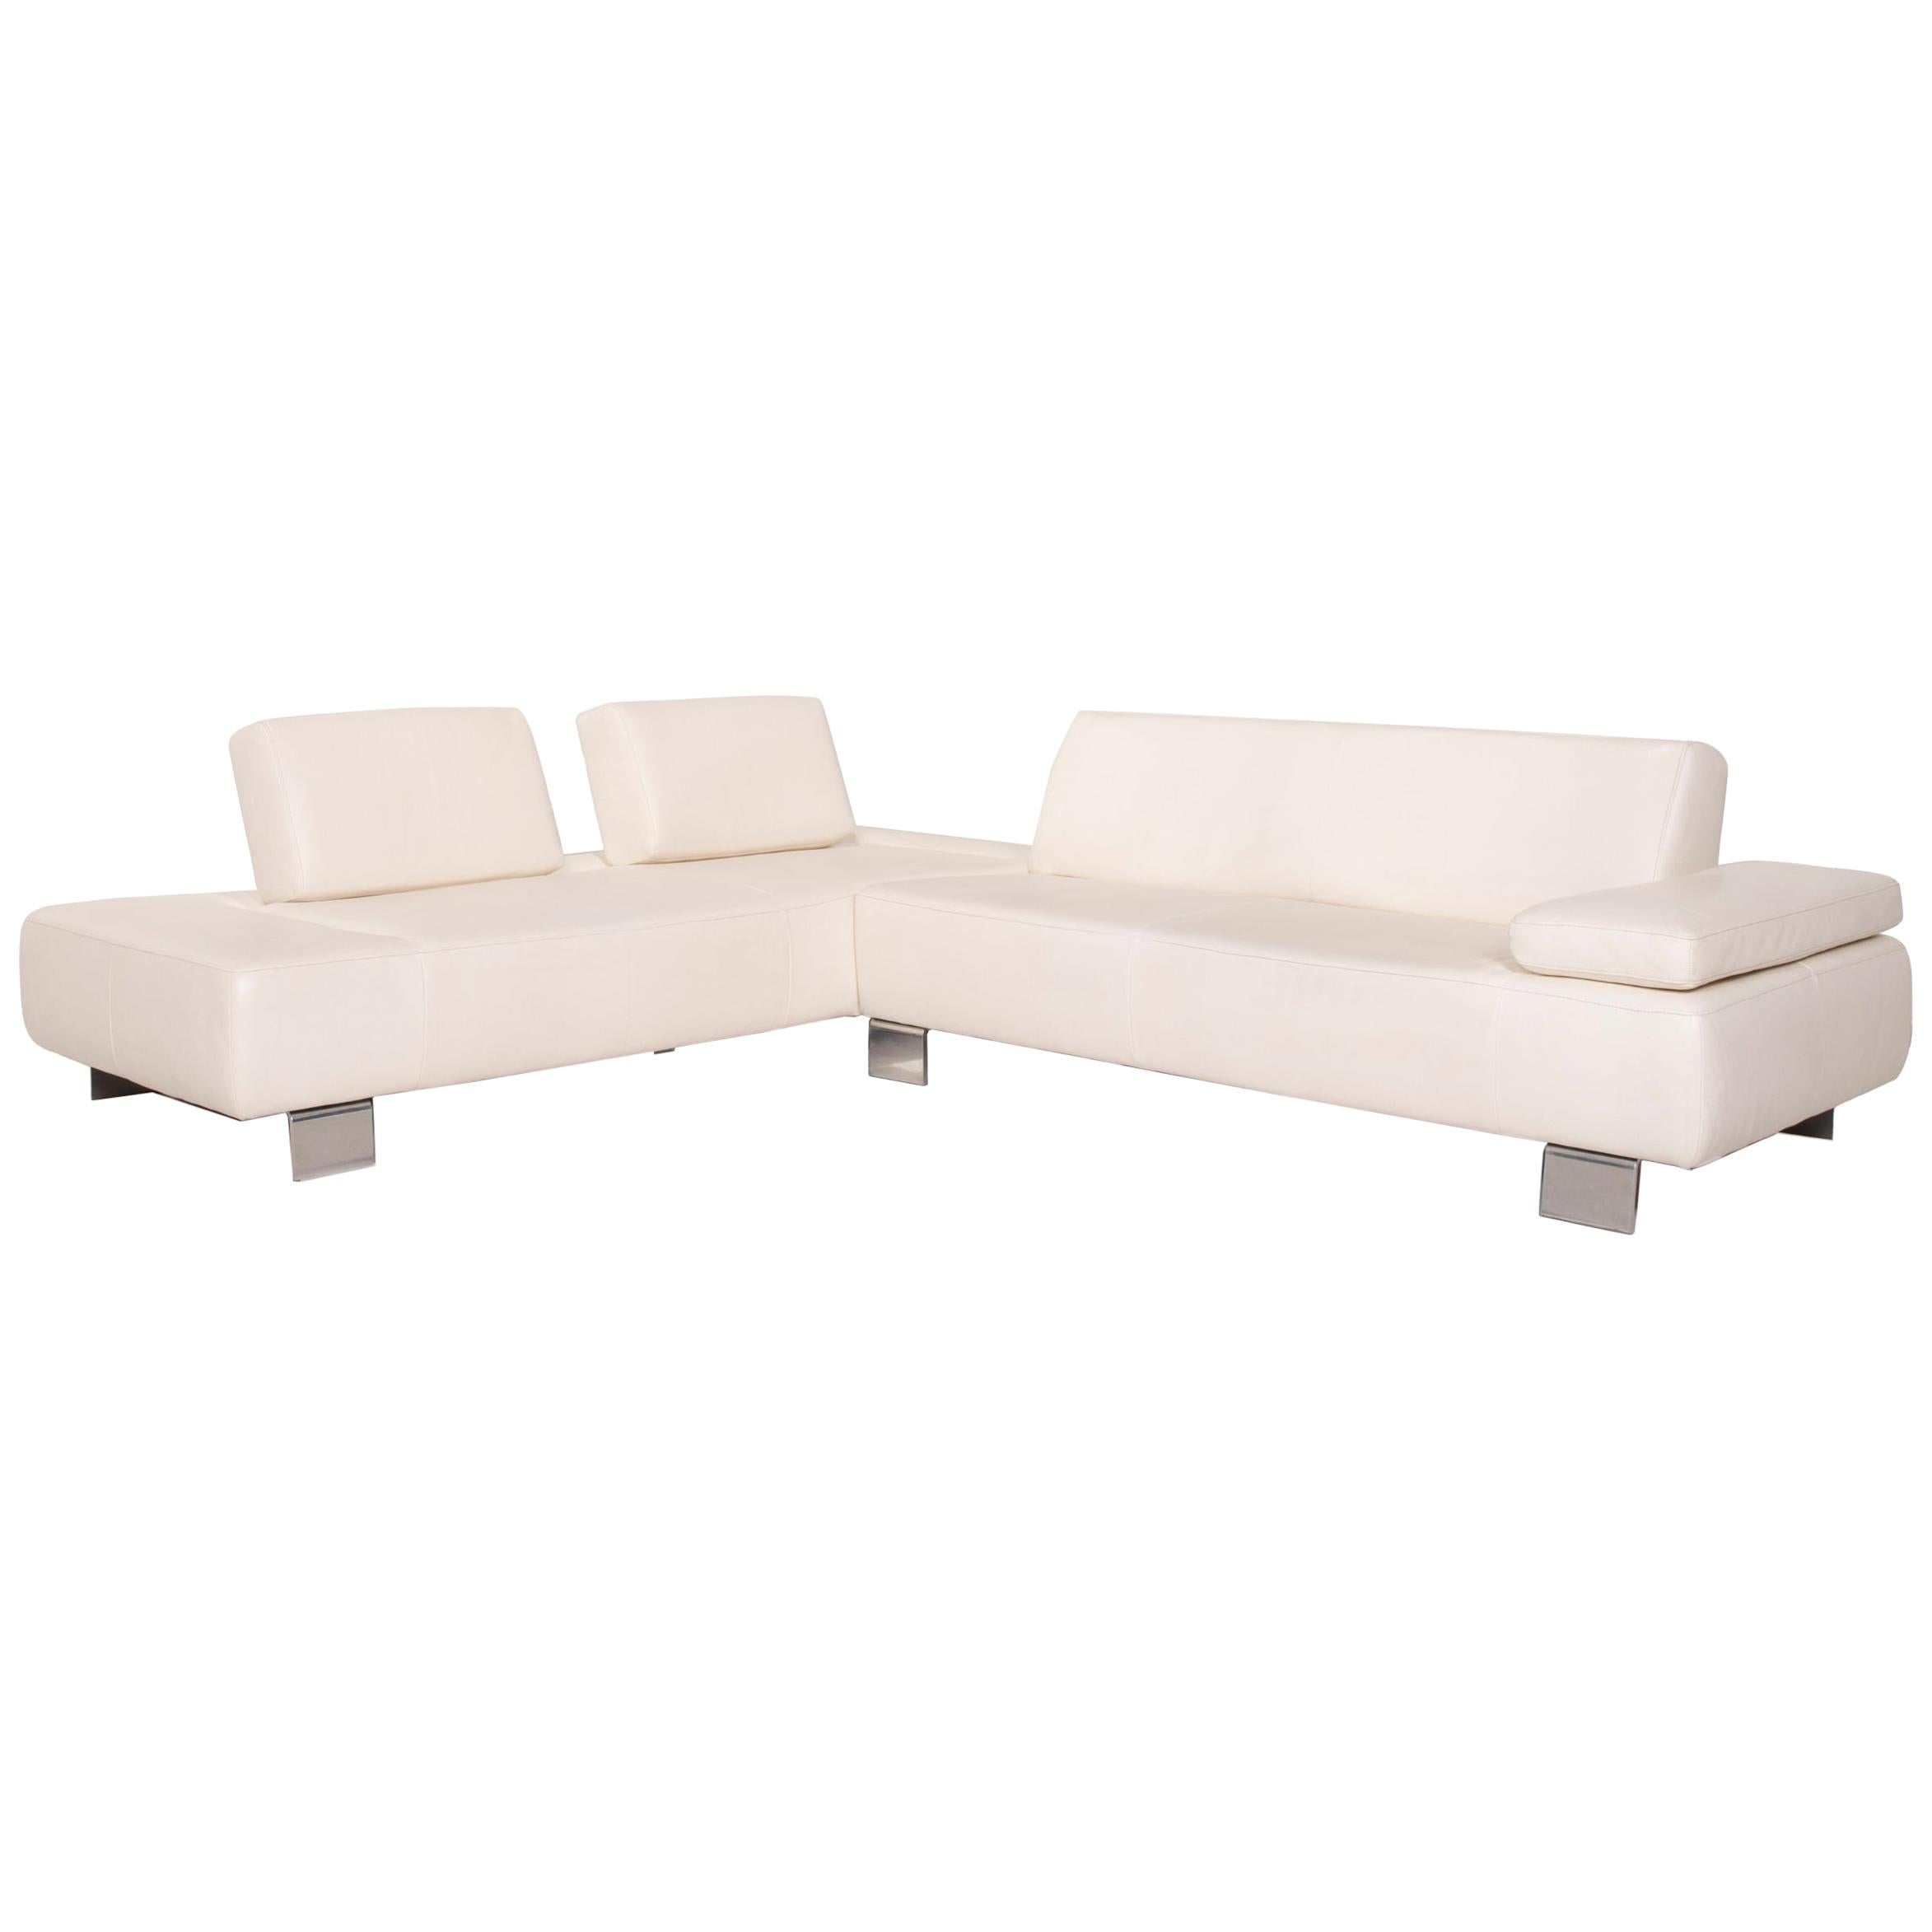 Willi Schillig Leather Sofa Cream Corner Sofa